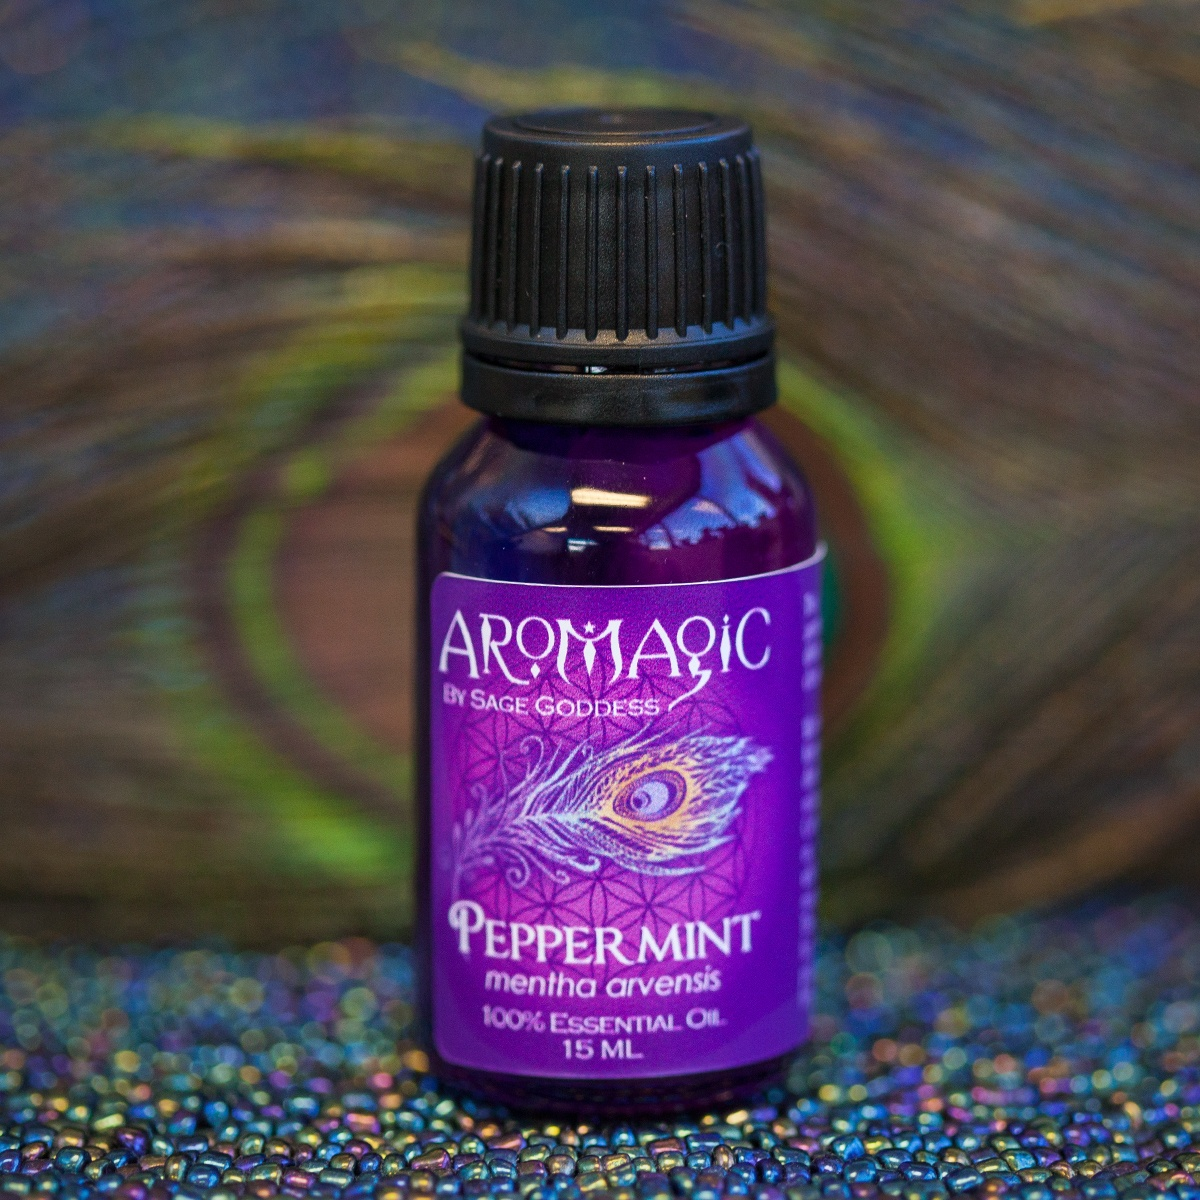 Peppermint Essential Oil for rejuvenation, mental clarity, and pain relief